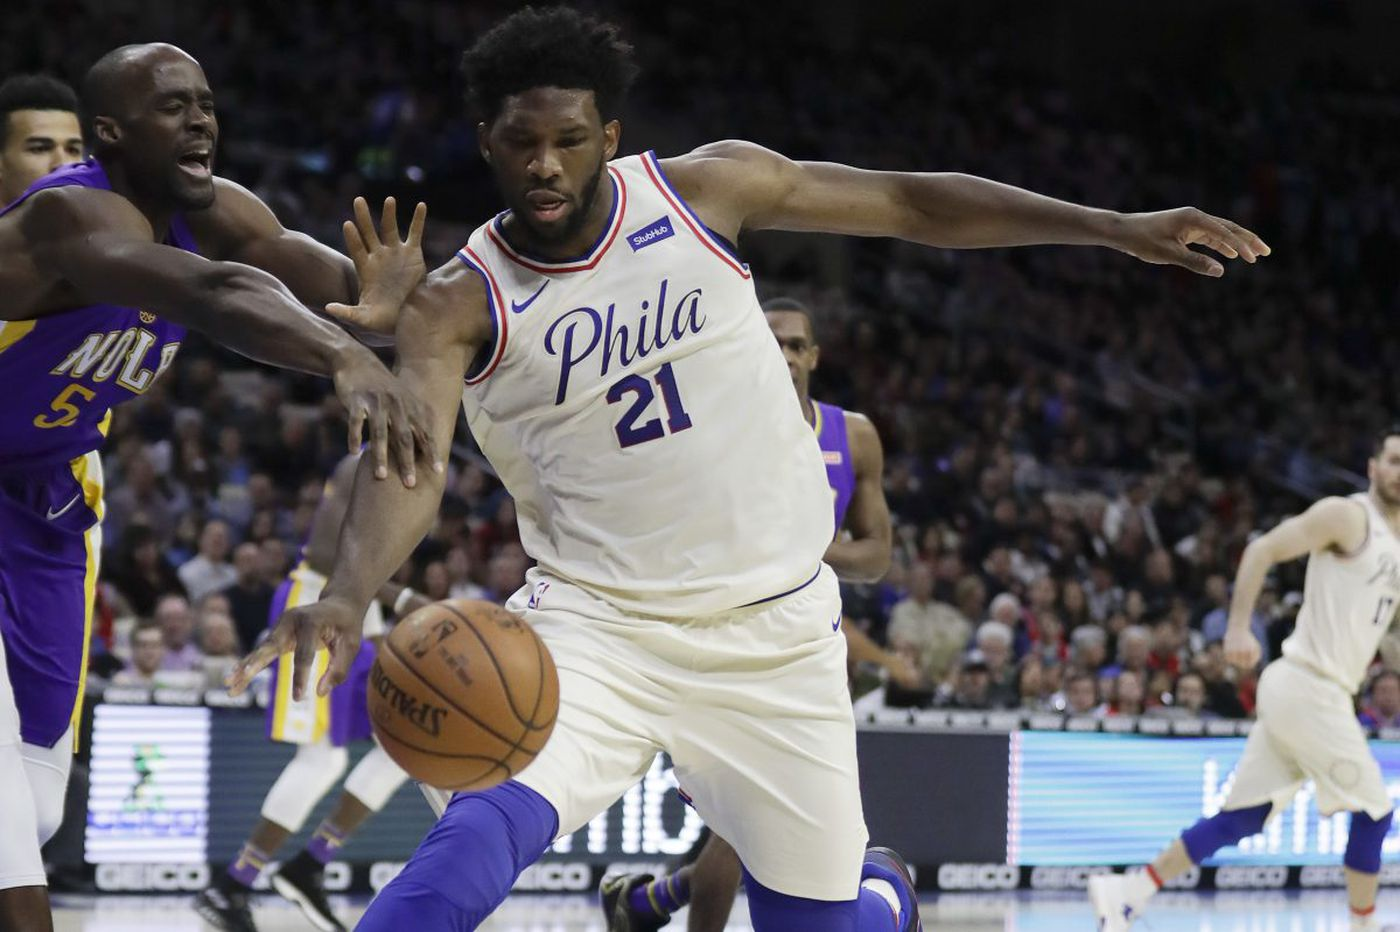 Sixers 100, Pelicans 82: Joel Embiid and Dario Saric lead a wire-to-wire rout, and other quick observations